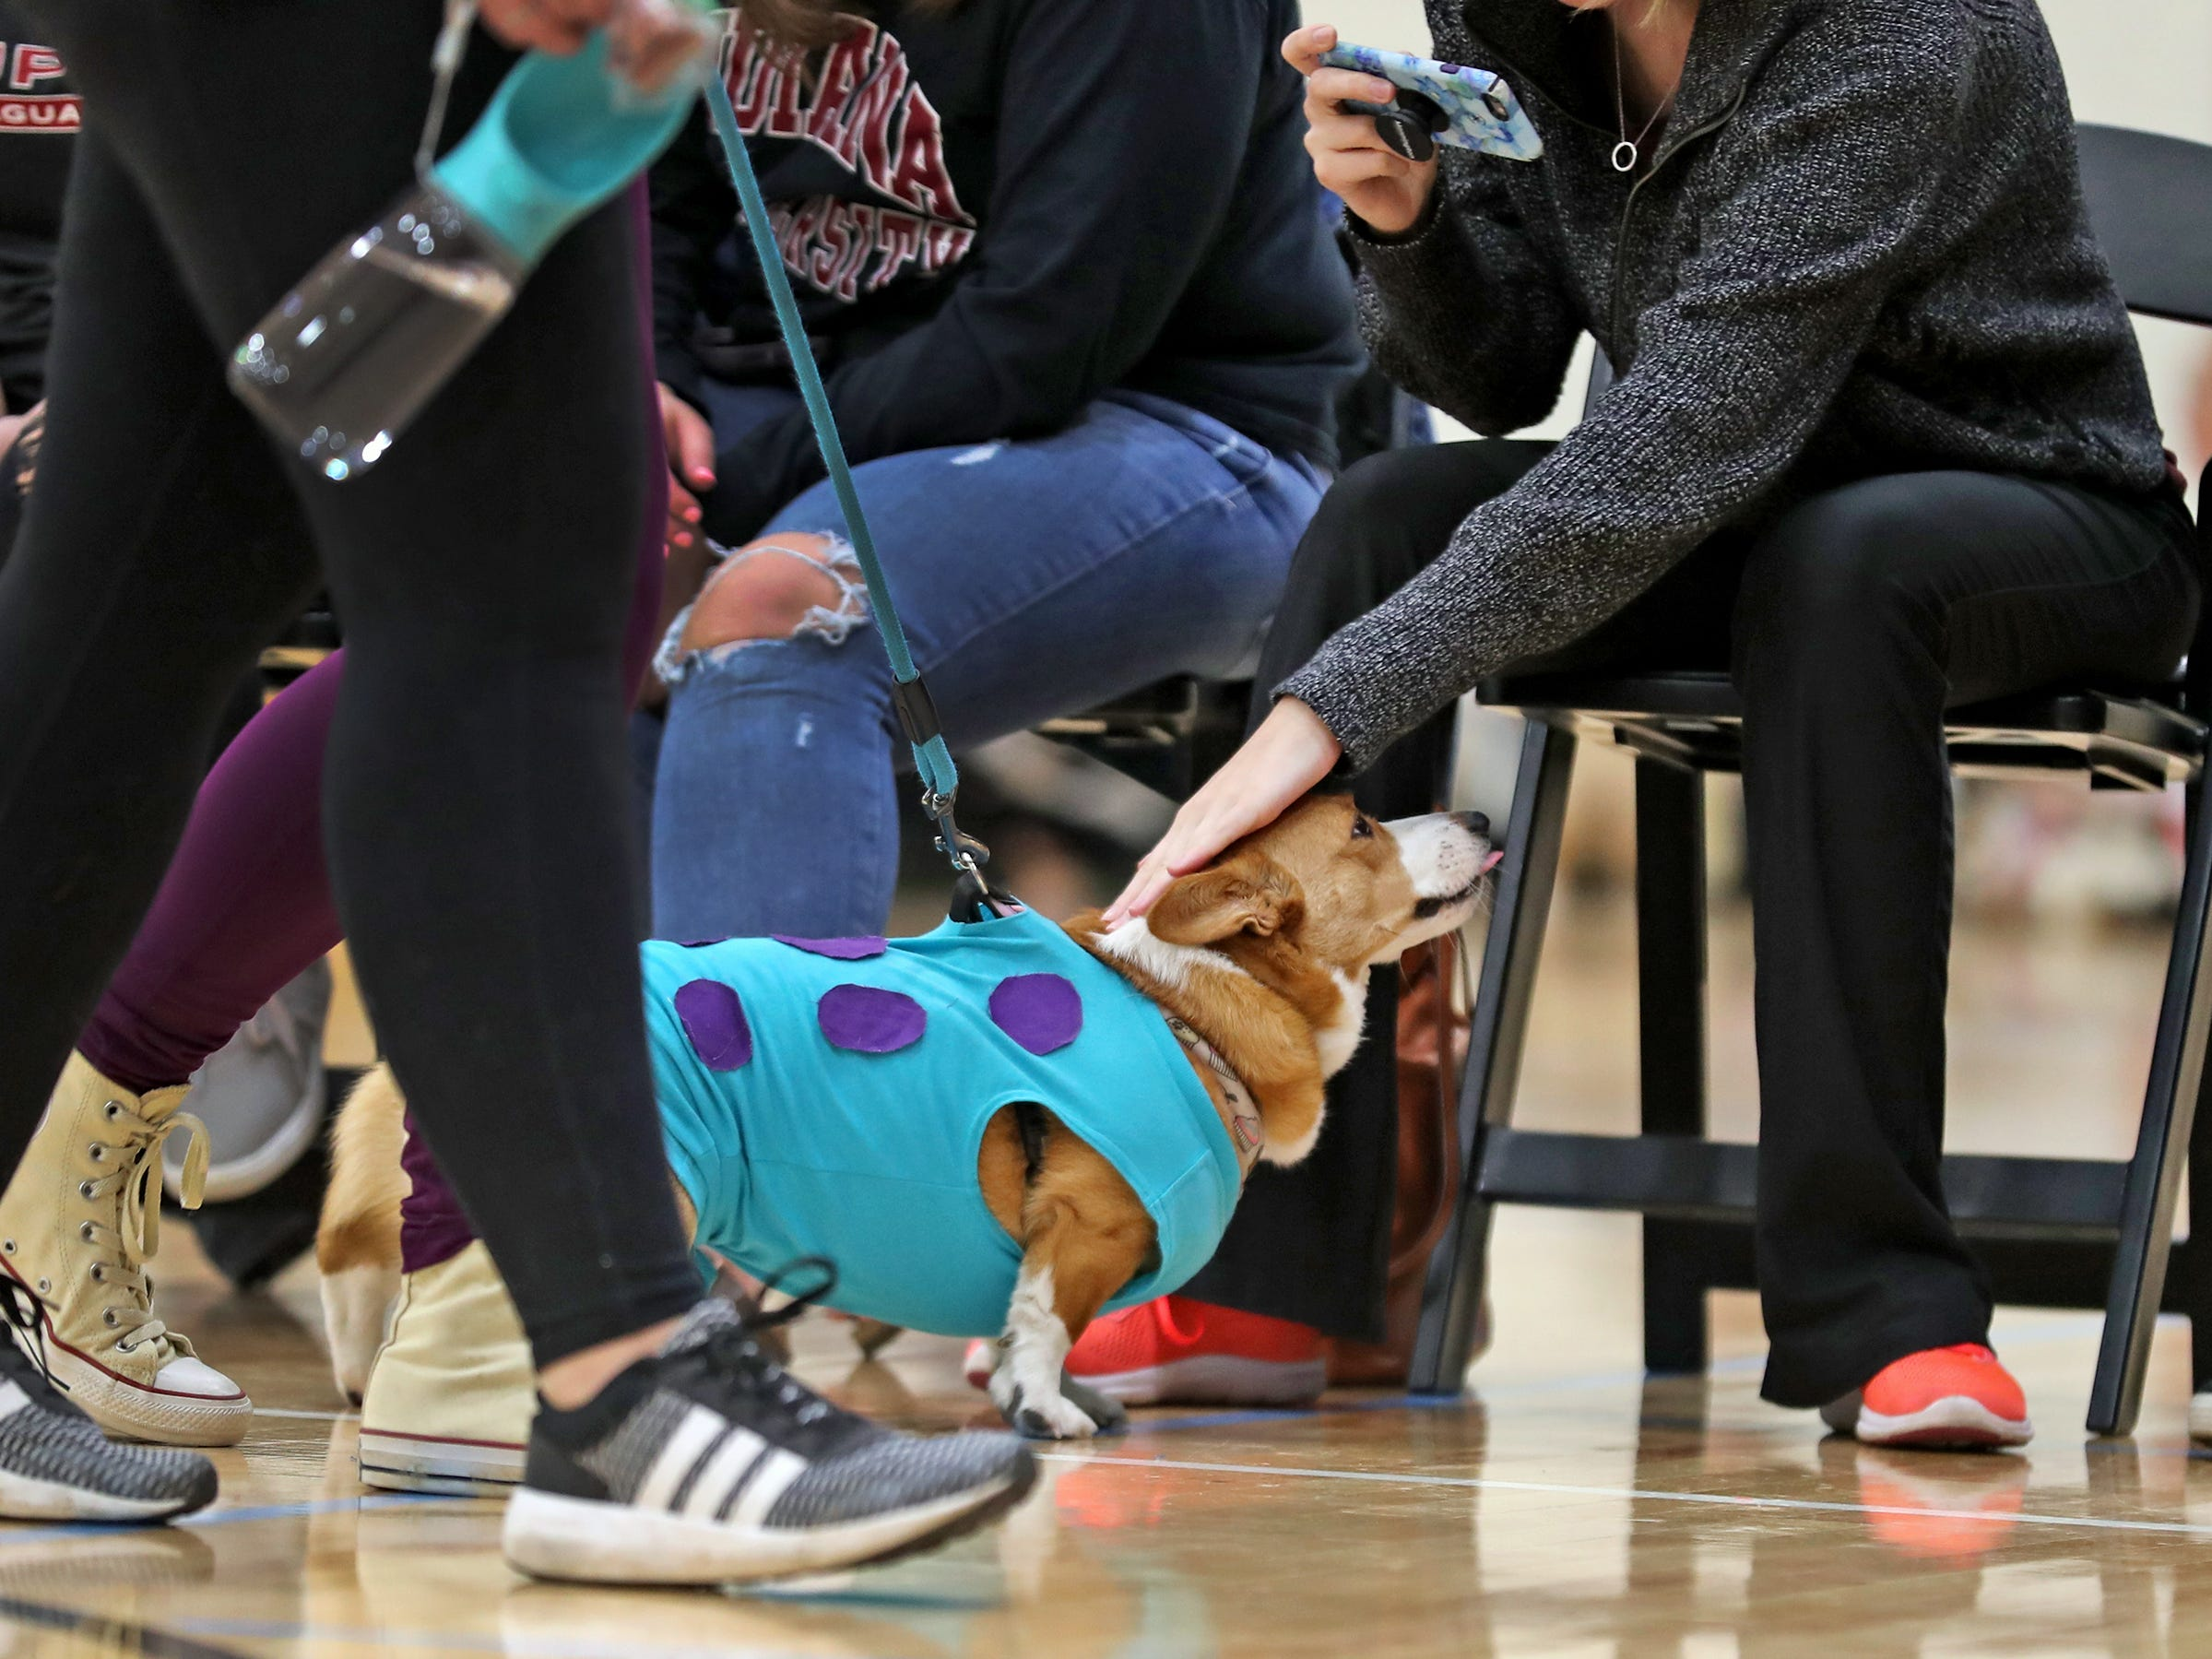 Ivy gets praise as she heads down the runway for the costume contest at the Indianapolis Corgi Limbo & Costume Contest at IUPUI, Sunday, April 14, 2019.  The event benefits children orphaned by HIV/AIDS in eSwatini, Africa.  It is presented by the Give Hope, Fight Poverty IUPUI chapter.